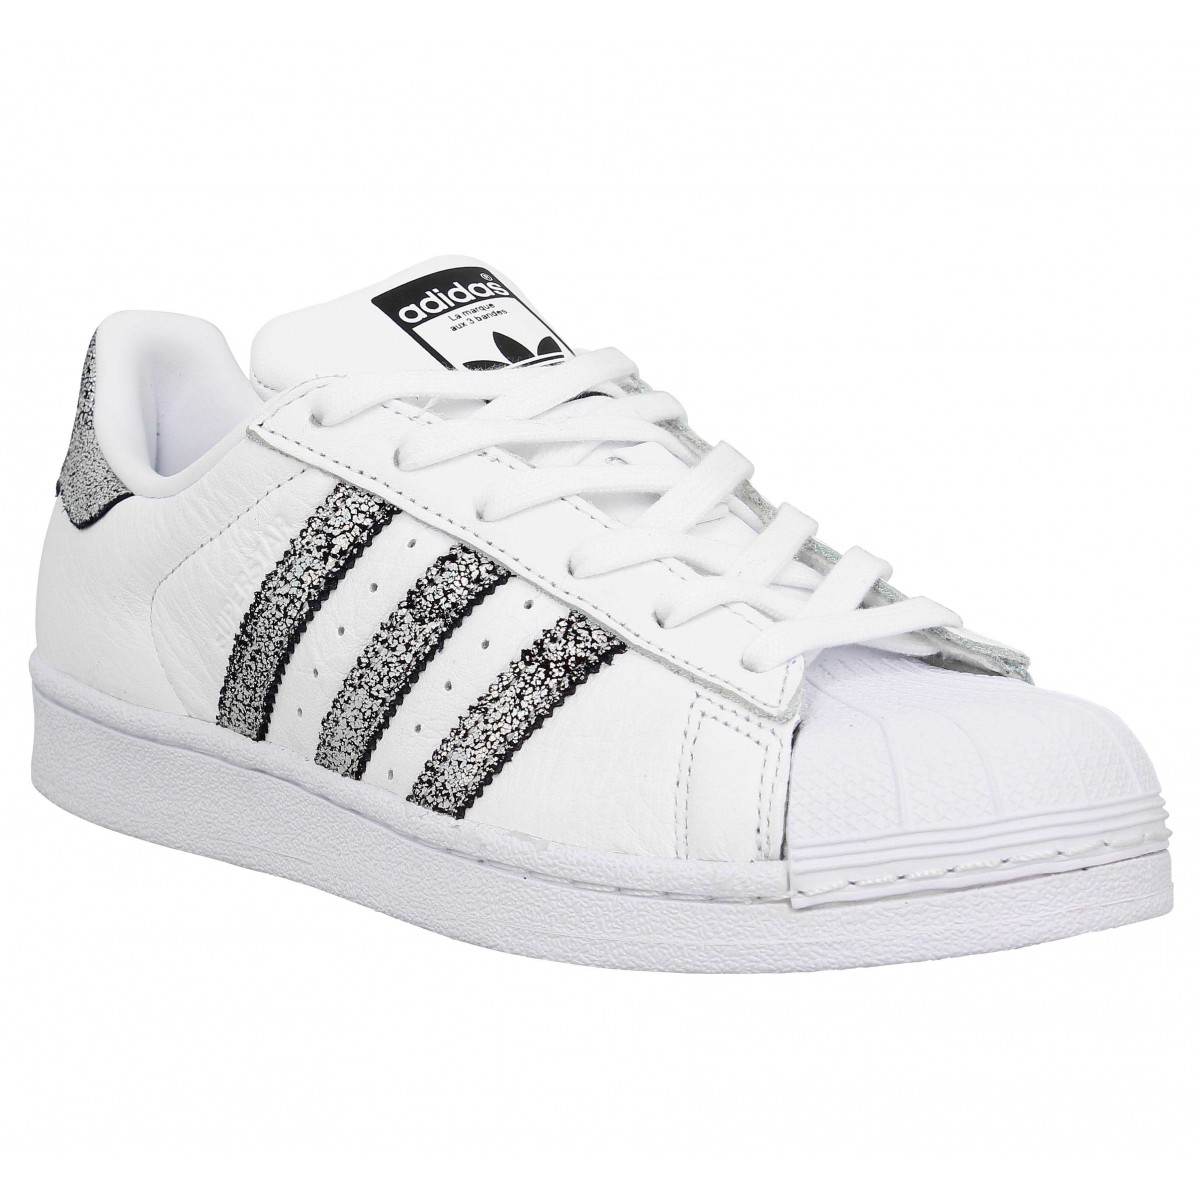 Réduction authentique adidas cuir femme Baskets panier bio